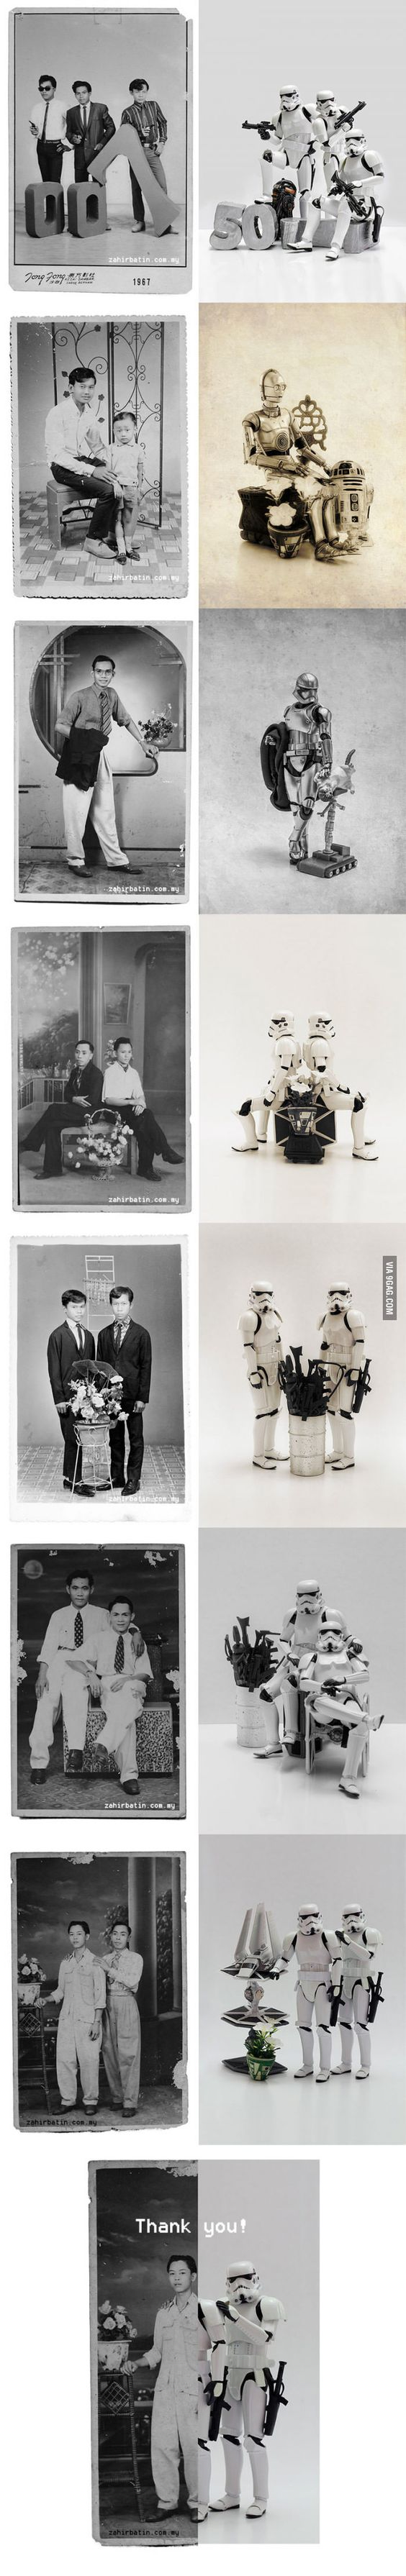 Recreating old family photos with Star Wars toys.